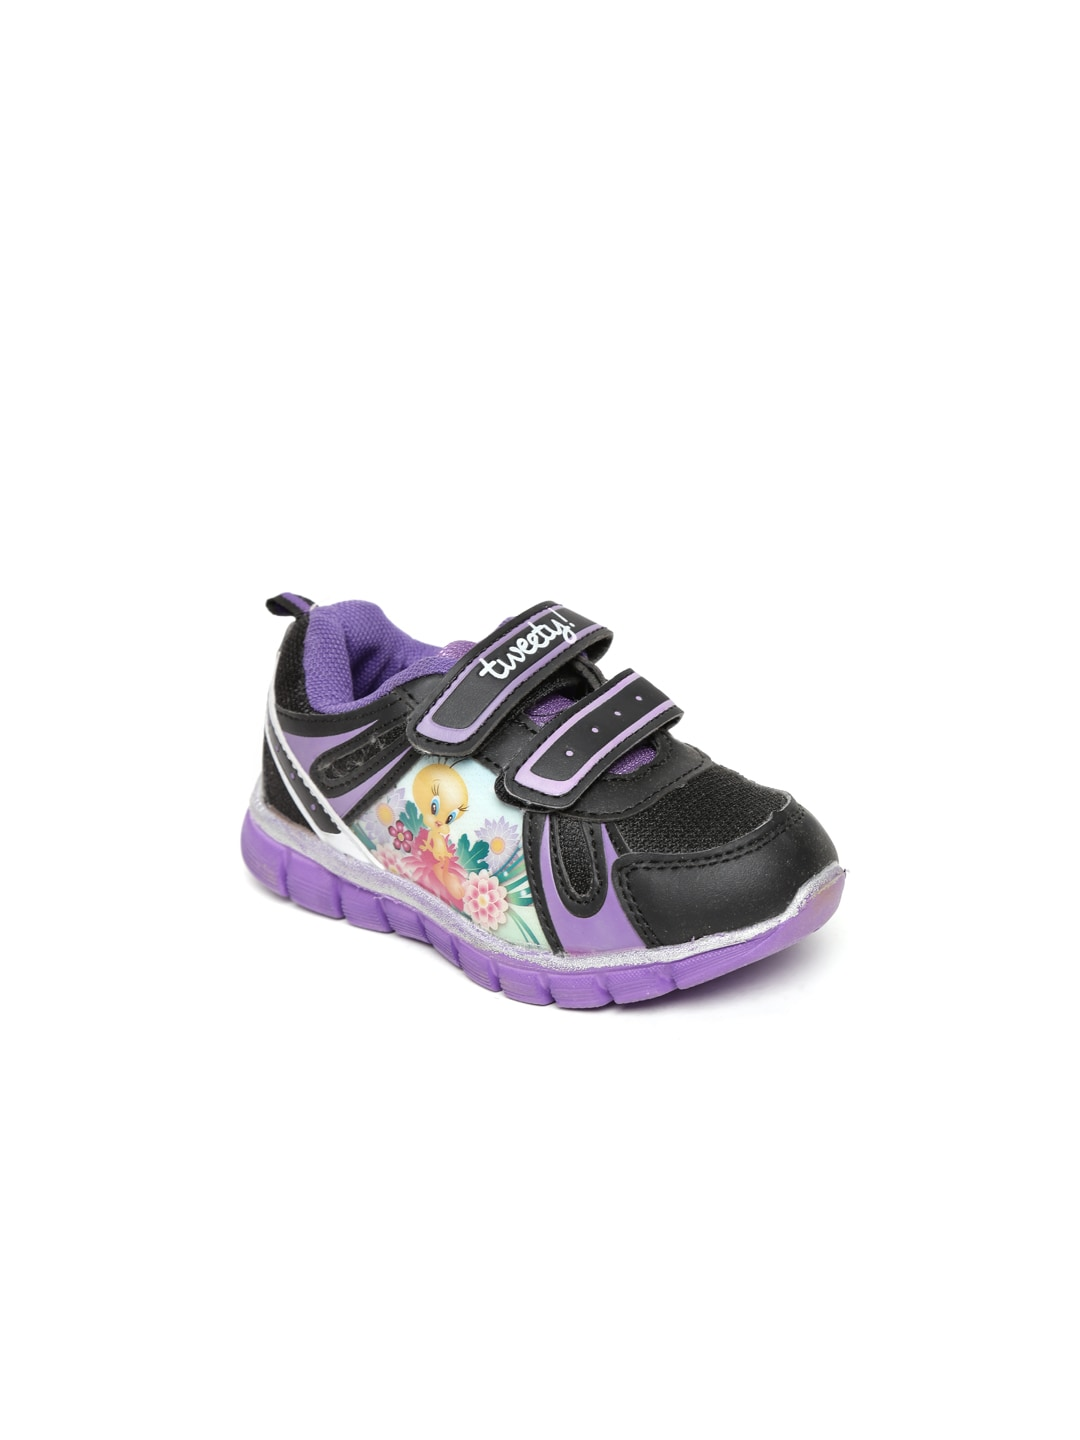 Tweety Tweety Kids Black Casual Shoes